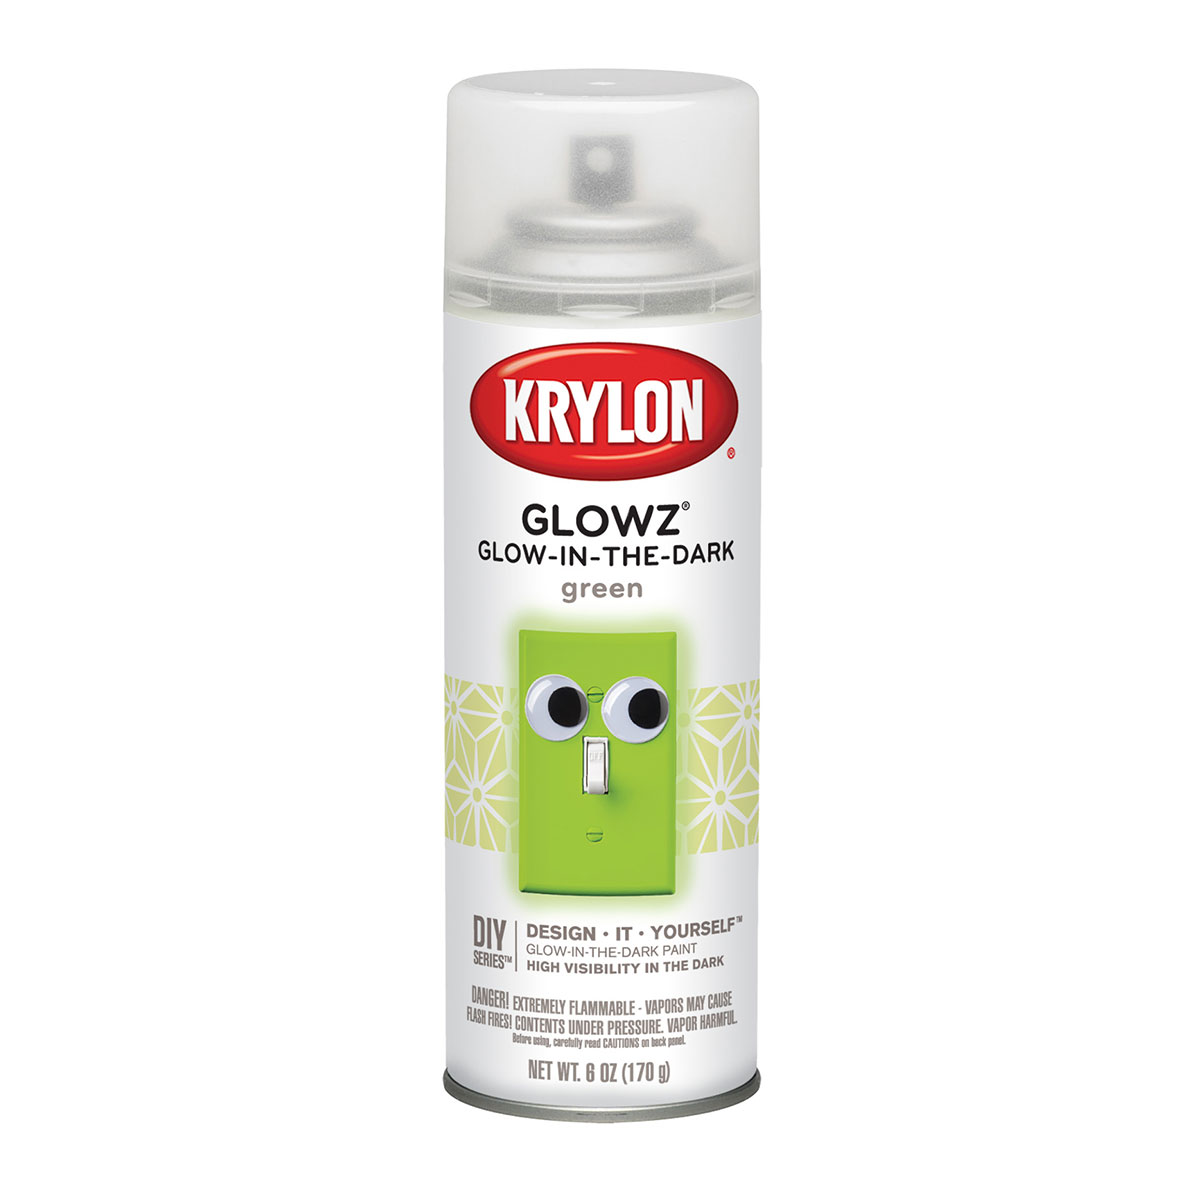 Krylon Glowz Glow In Dark Paint